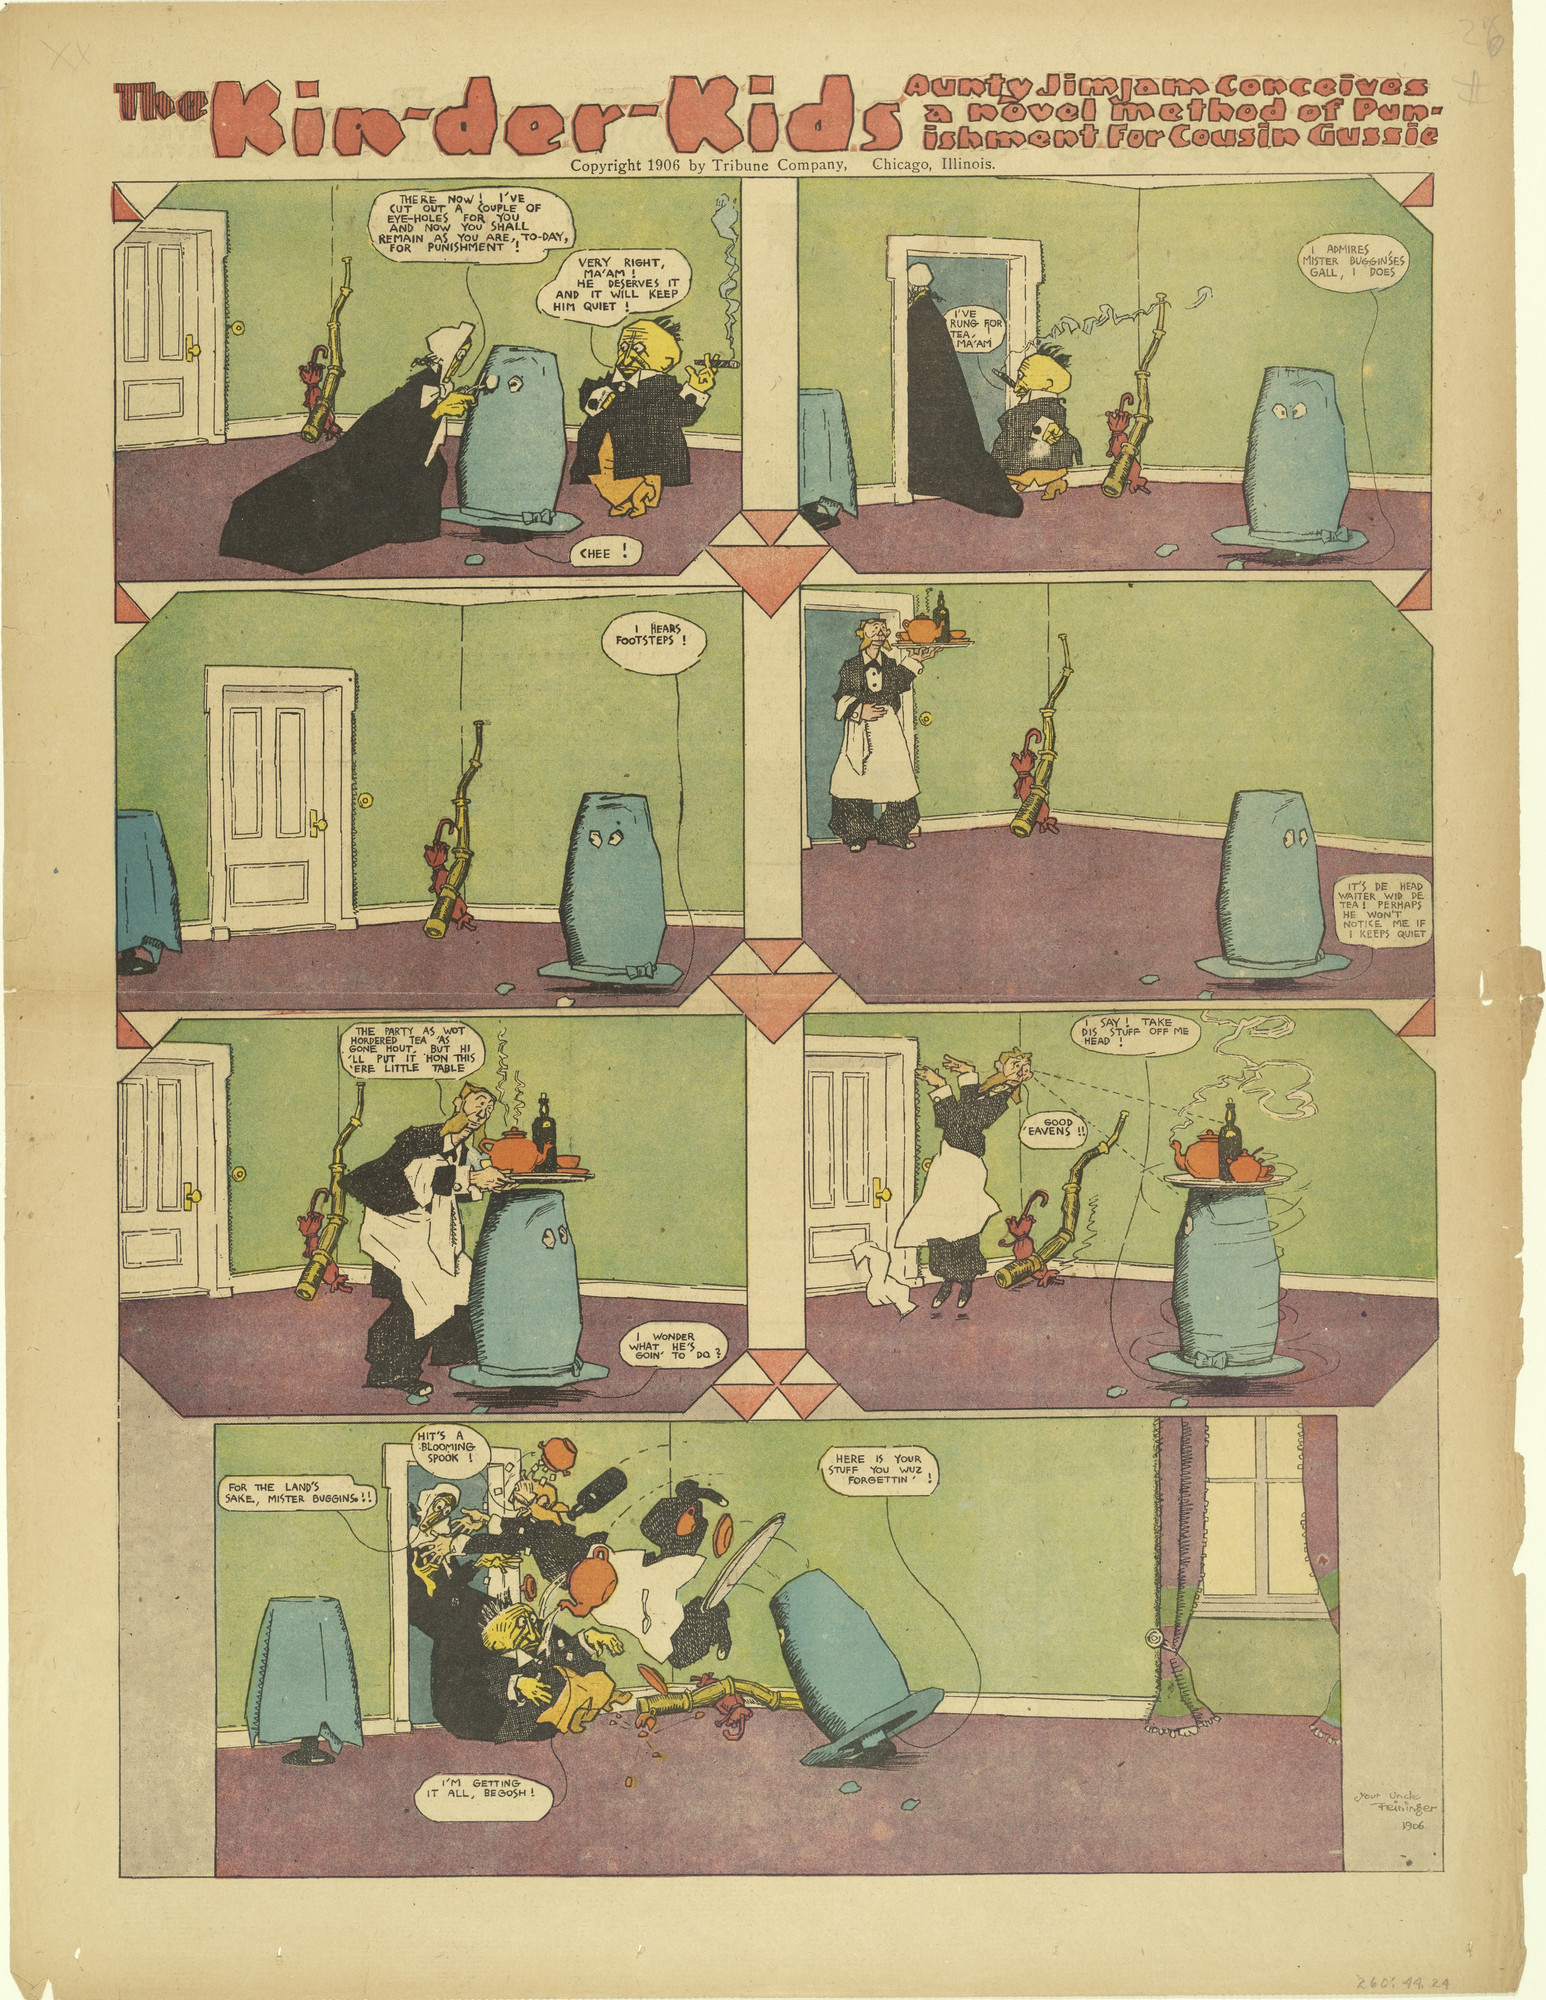 Lyonel Feininger. The Kin-der-Kids: Aunty Jimjam Conceives a Novel Method of Punishment for Cousin Gussie from The Chicago Sunday Tribune. (October 21) 1906